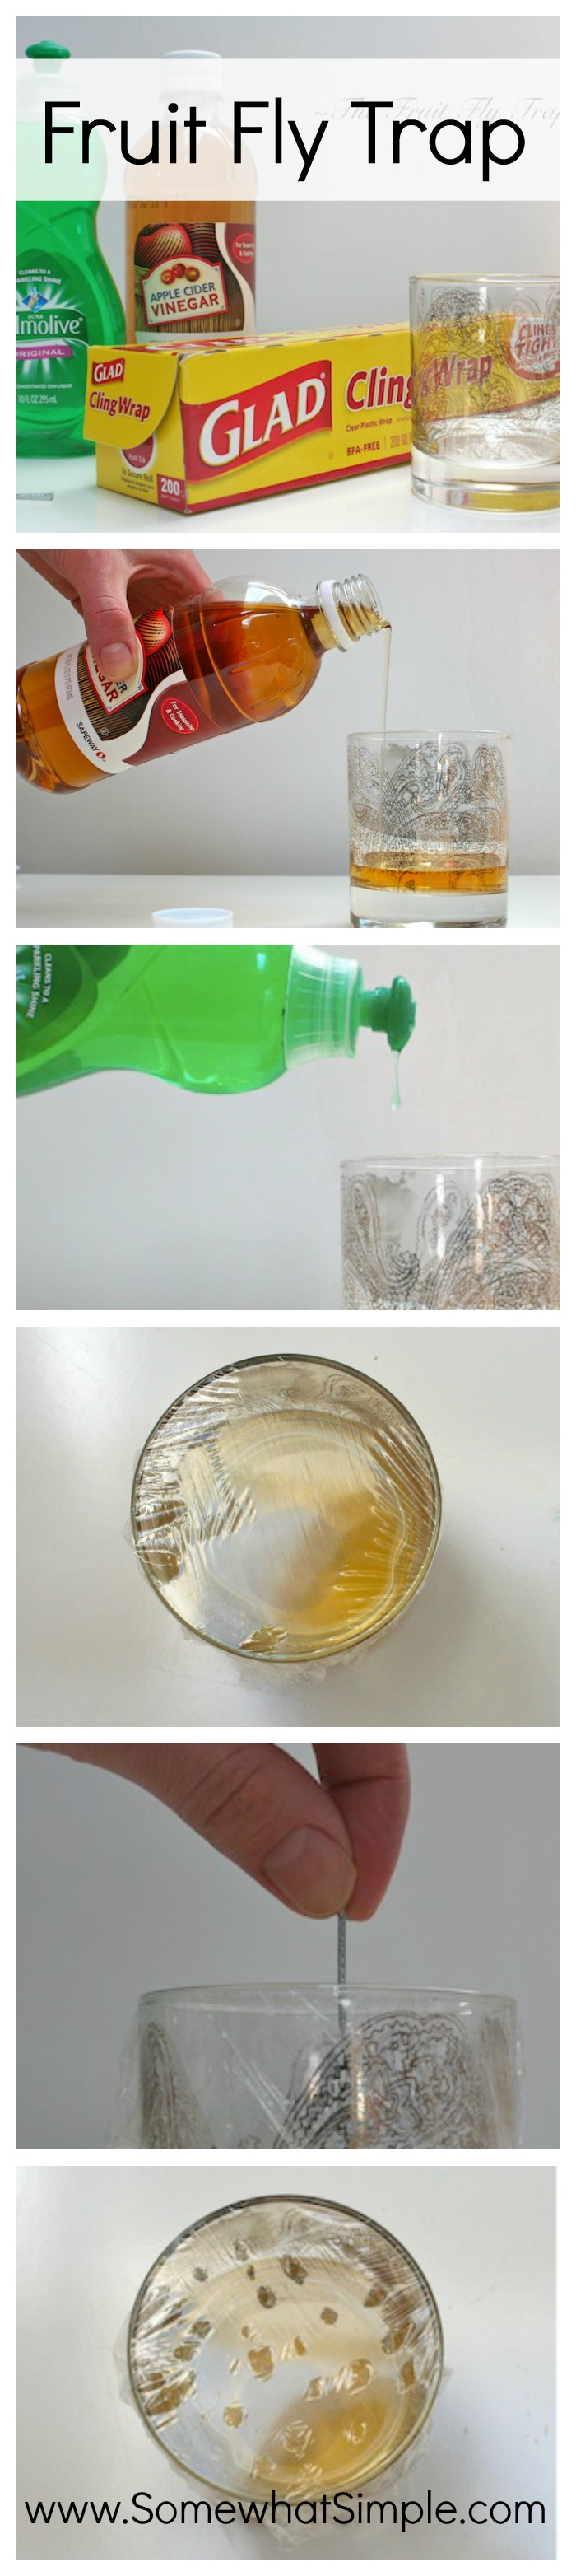 How to get rid of fruit flies and gnats fruit fly trap pinterest